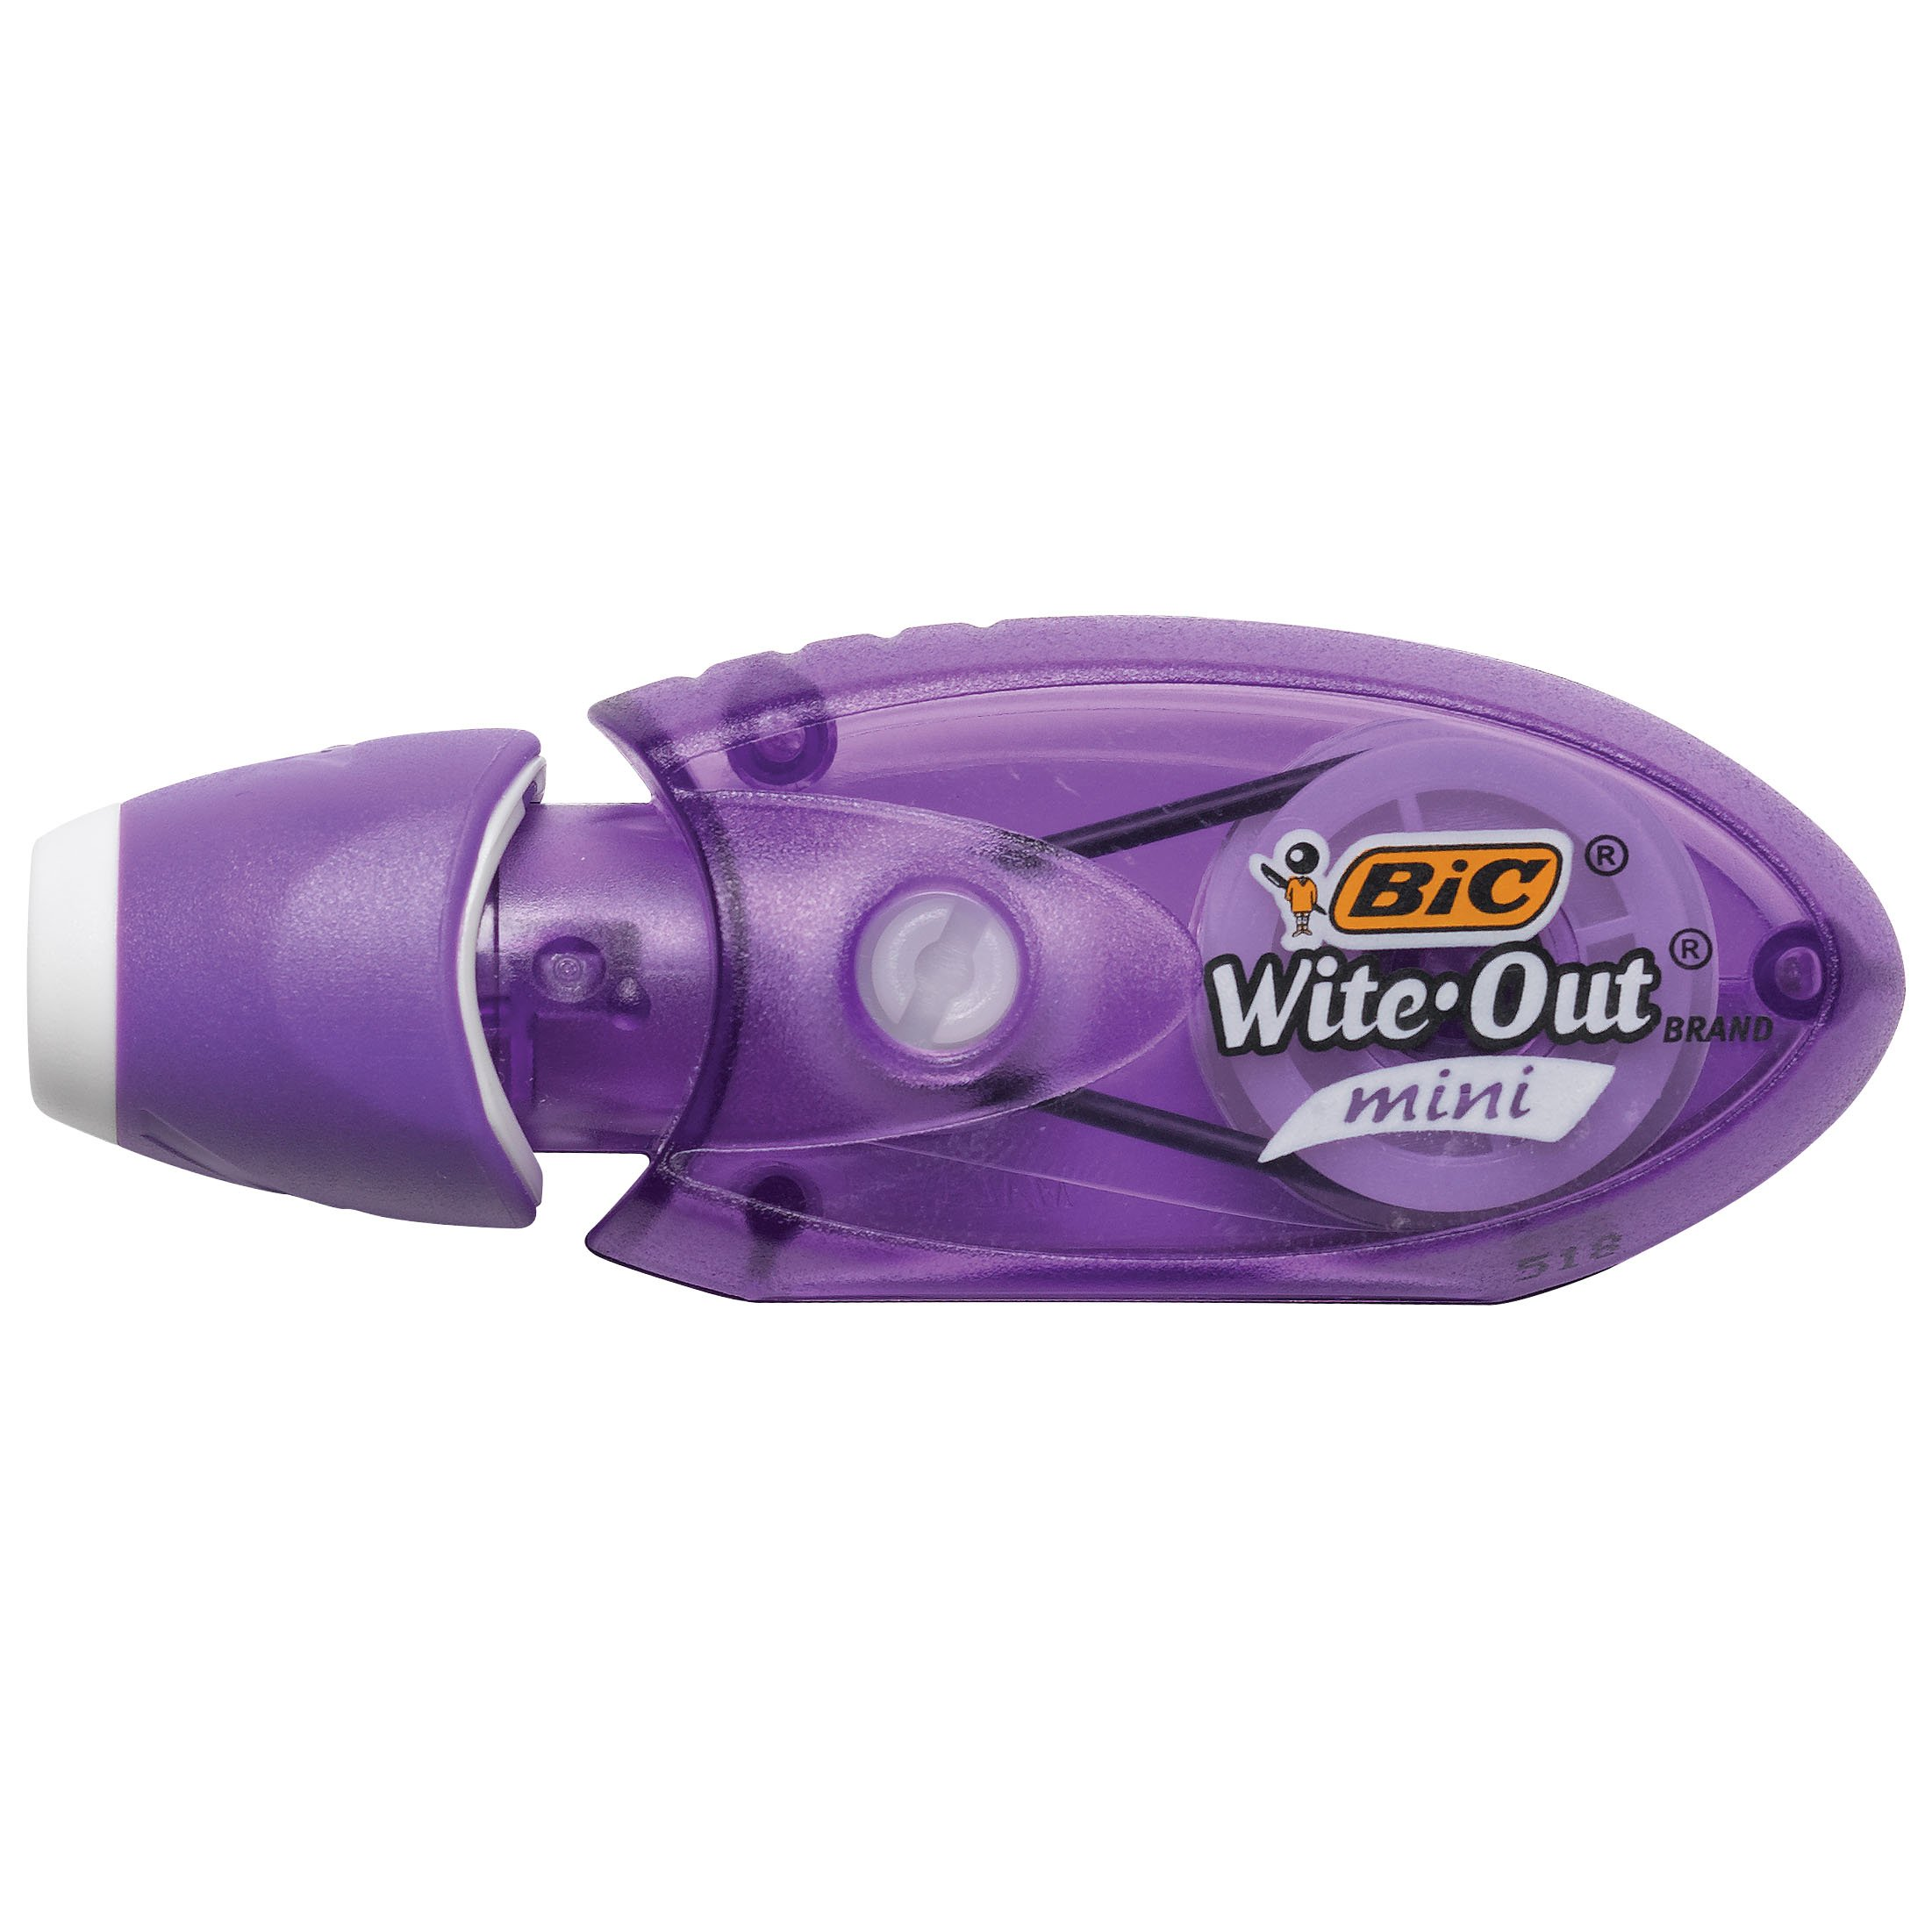 BIC Wite-Out Brand Mini Twist Correction Tape, White, 2-Count (WOMTP21) by BIC (Image #5)